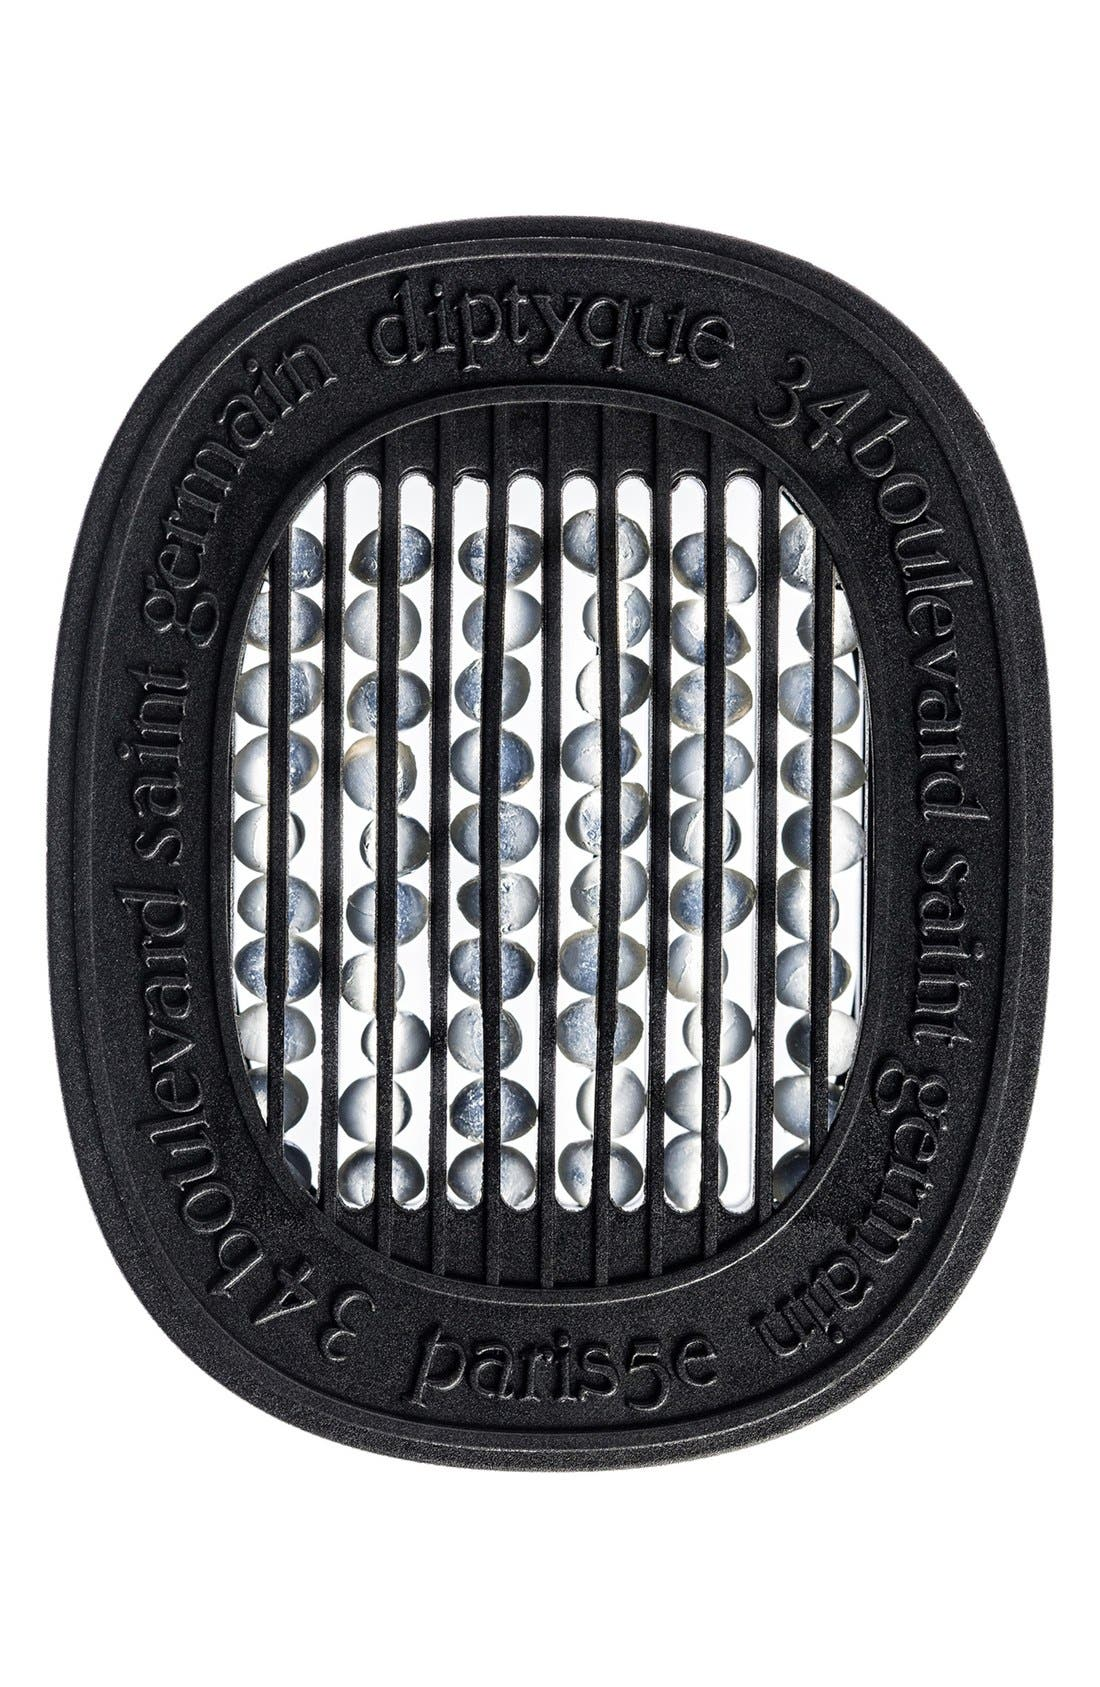 diptyque '34 Boulevard Saint Germain' Electric Diffuser Cartridge